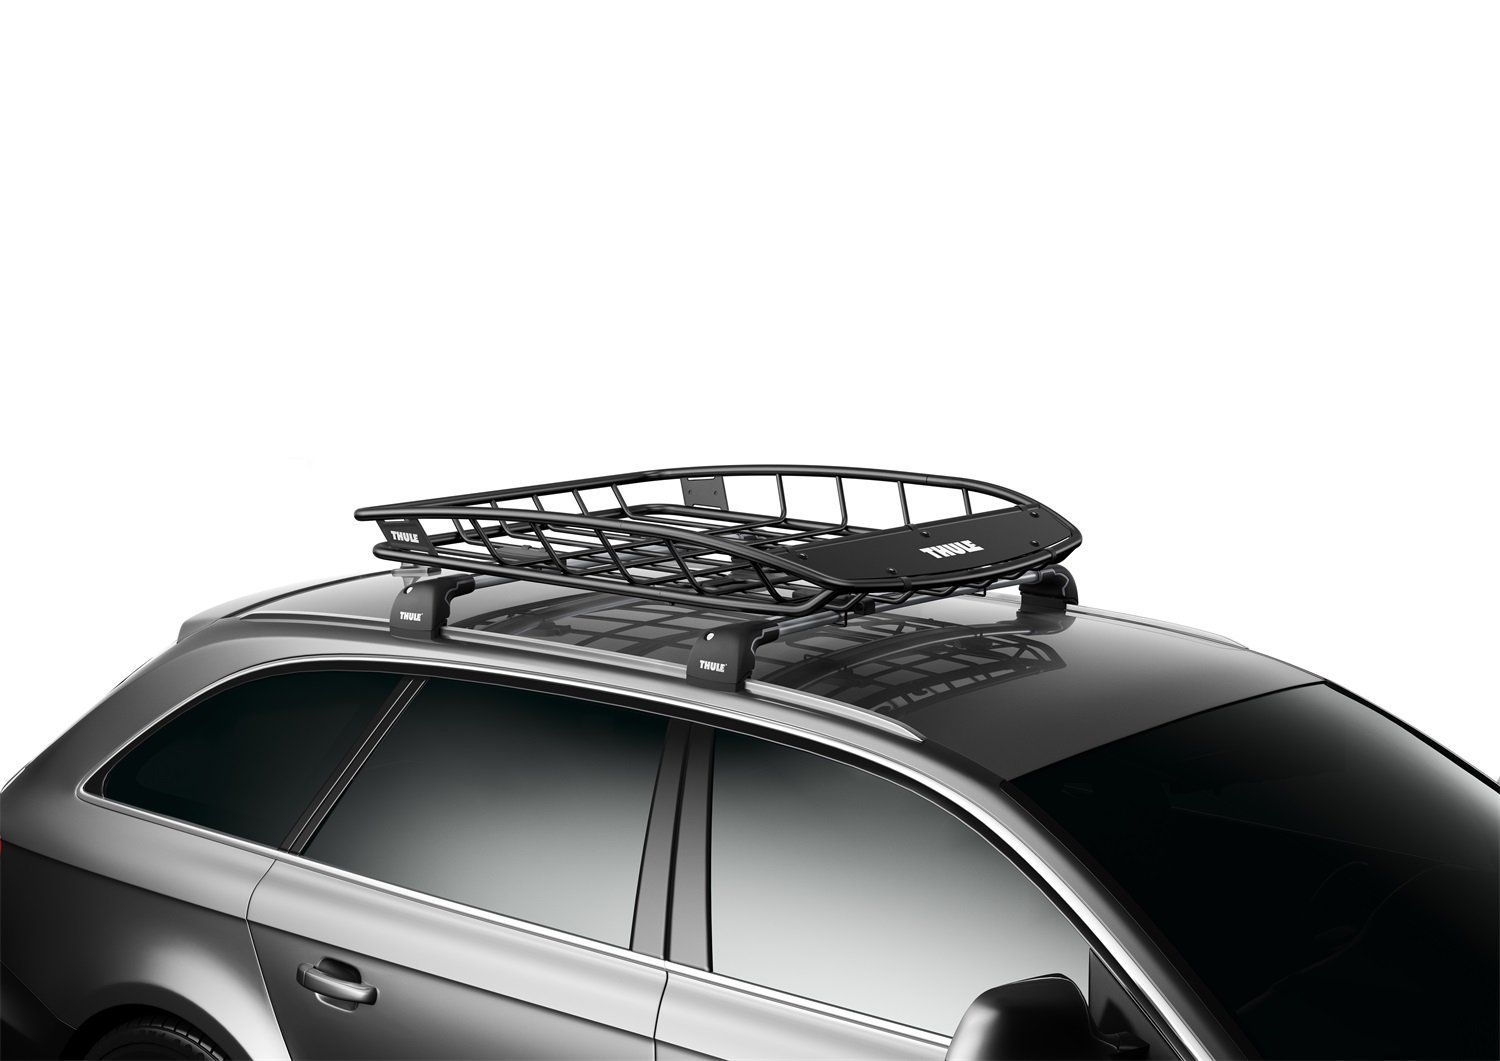 Thule Thule859 Jeep Canyon Roof Rack Cargo Basket Thule859 Ship Cargo Carriers Roof Box Roof Rack